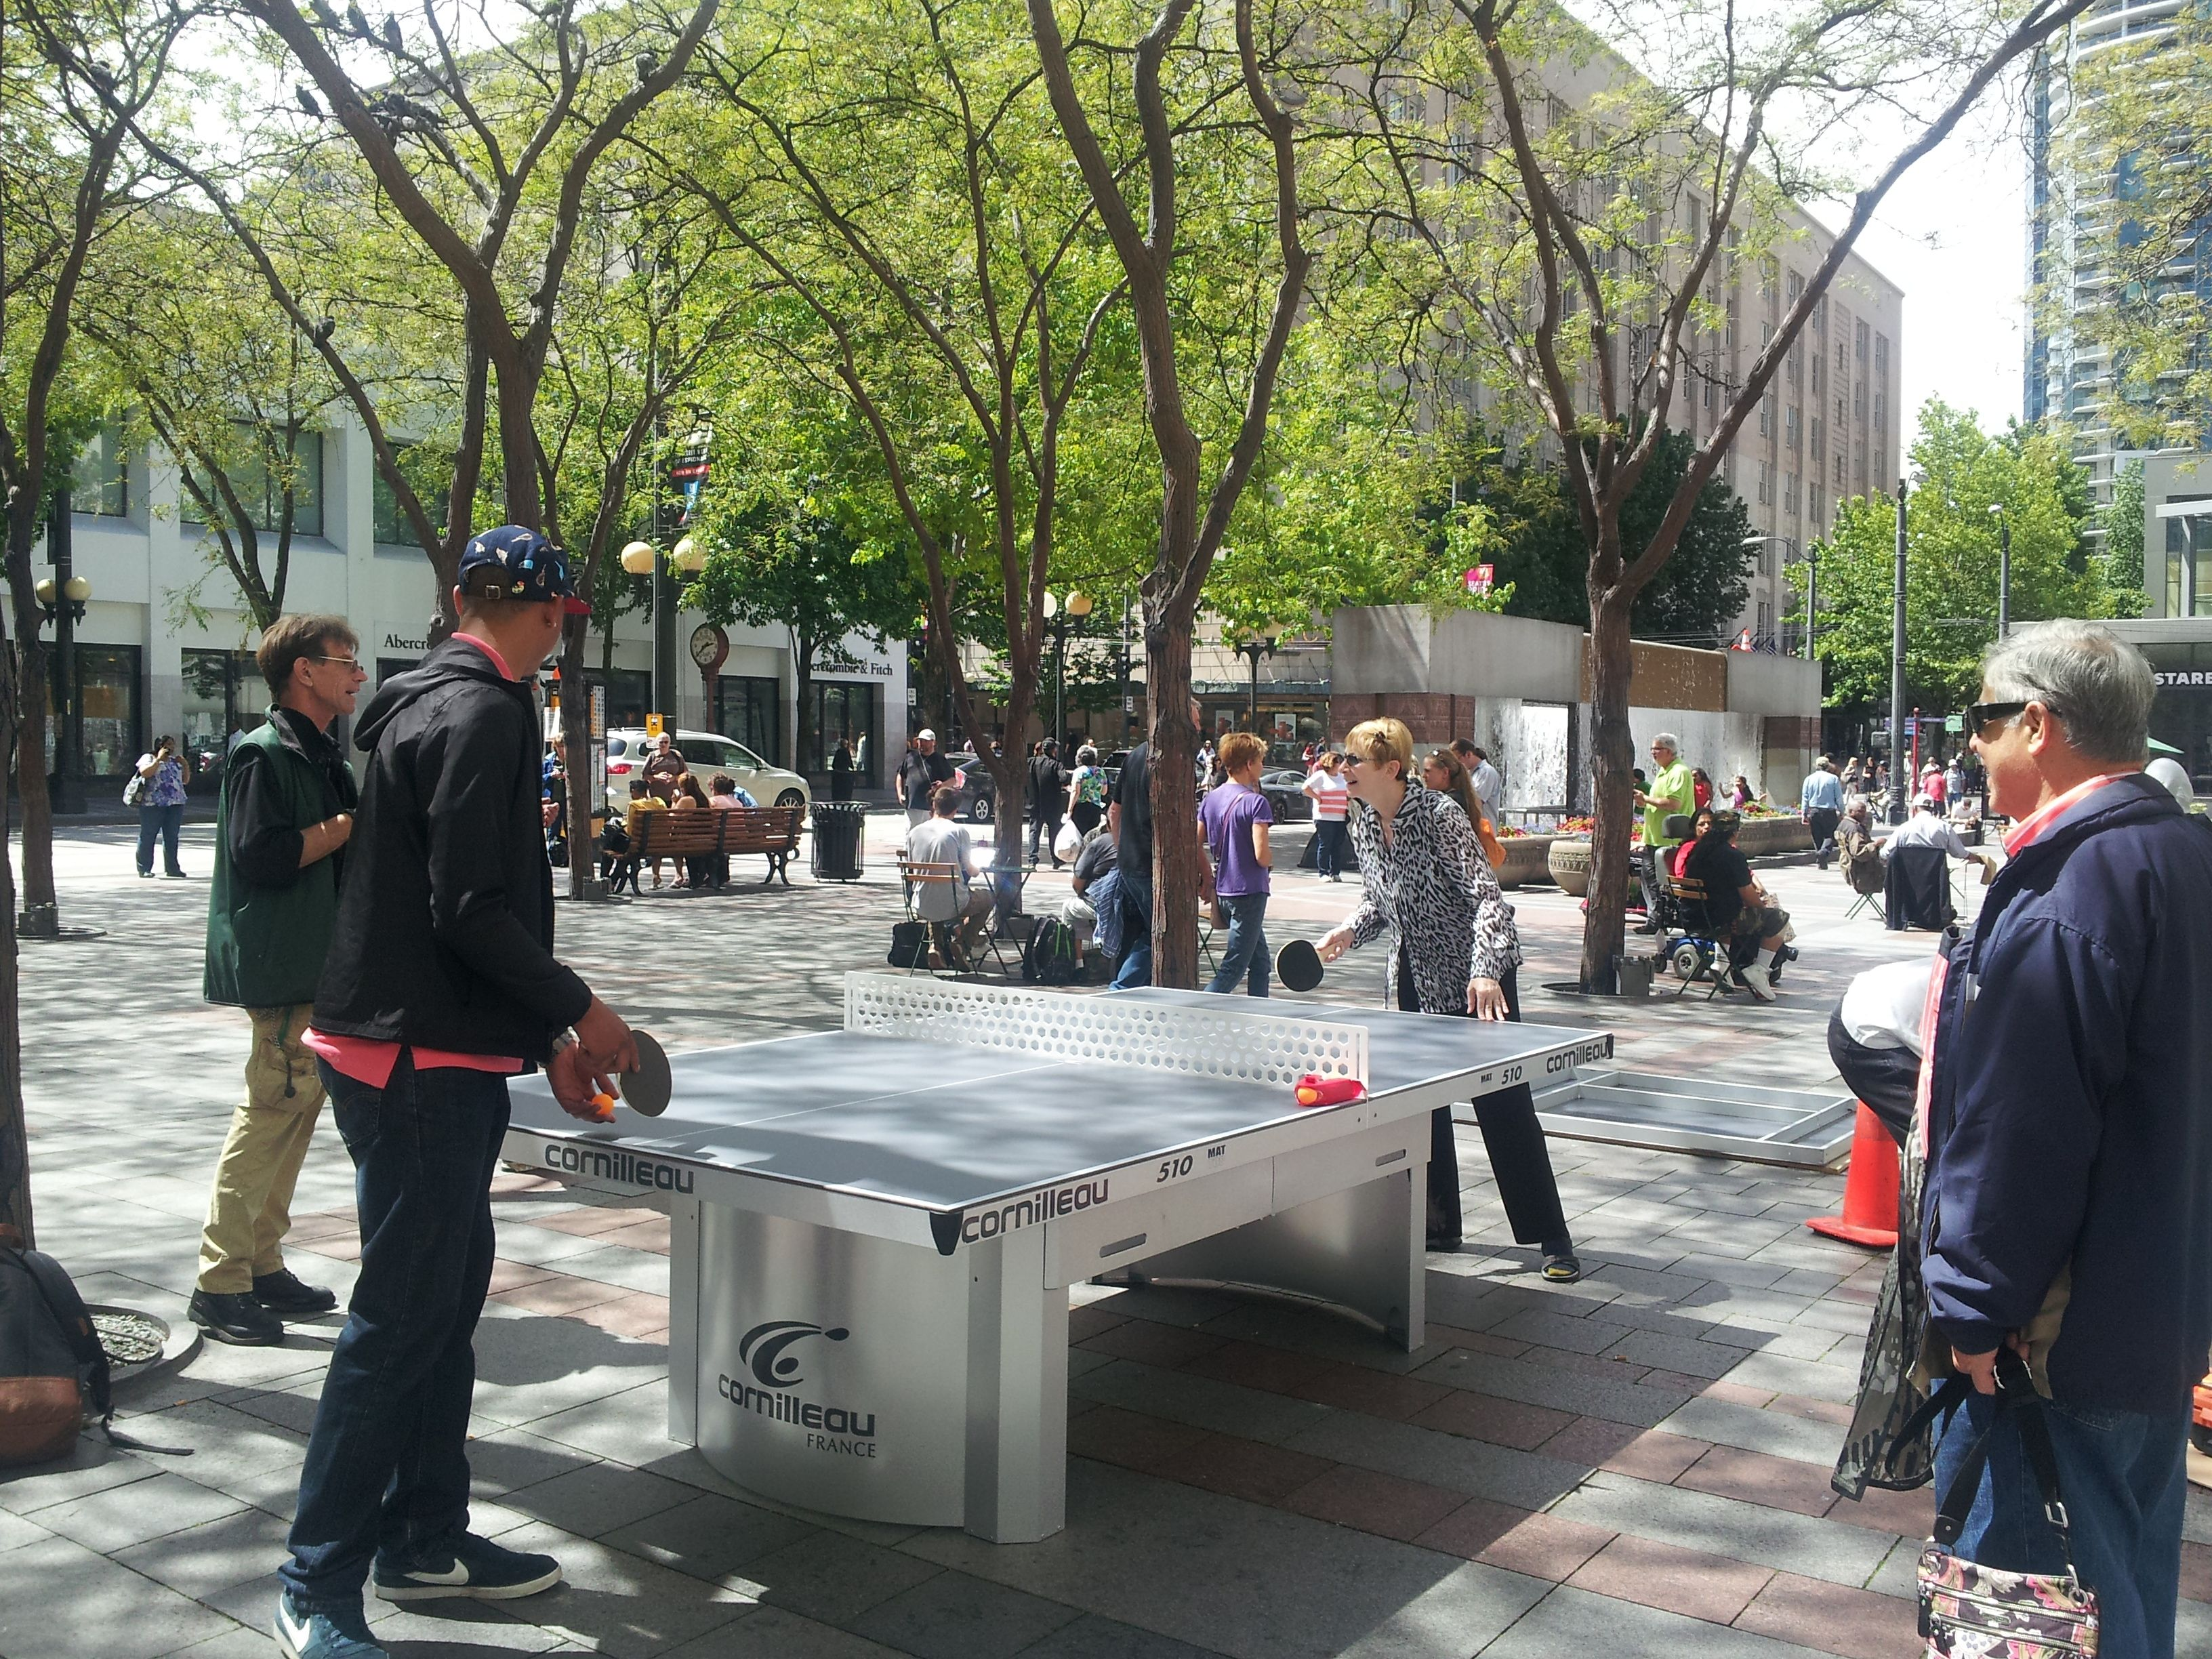 Downtownu0027s Westlake Park has BYOP ping pong tables